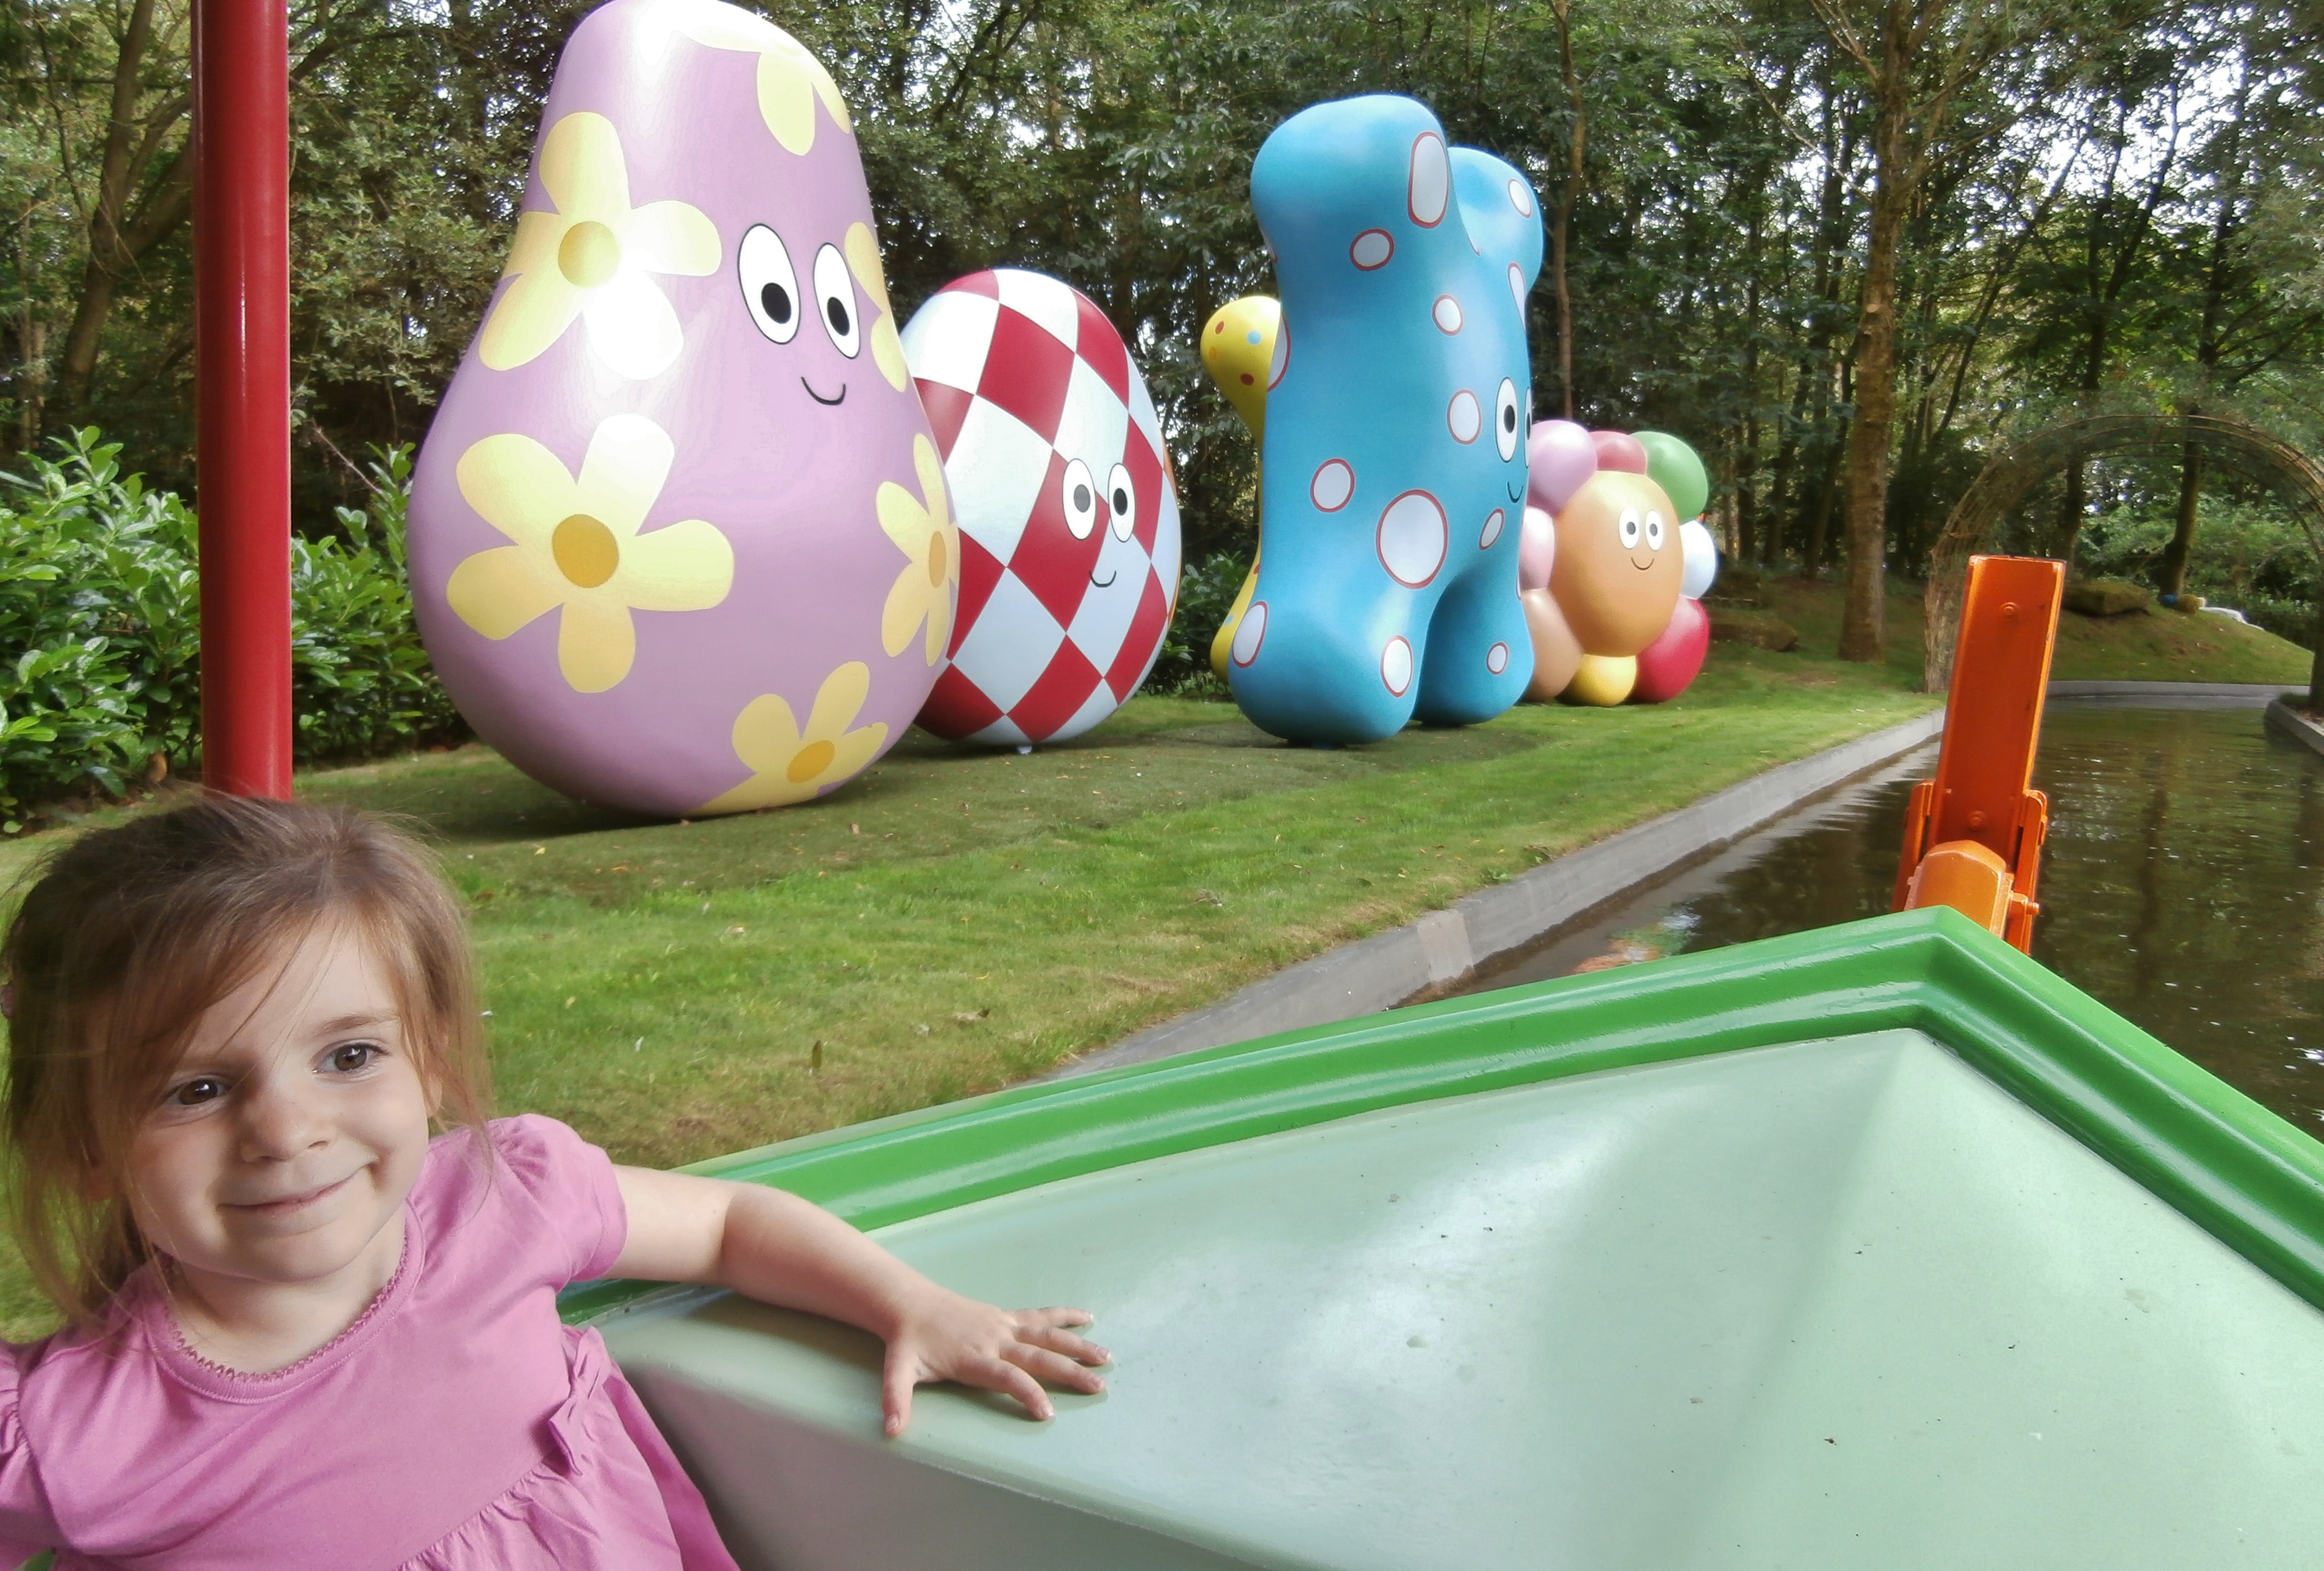 Cbeebies Land, Alton Towers, for Mail August 9 2014